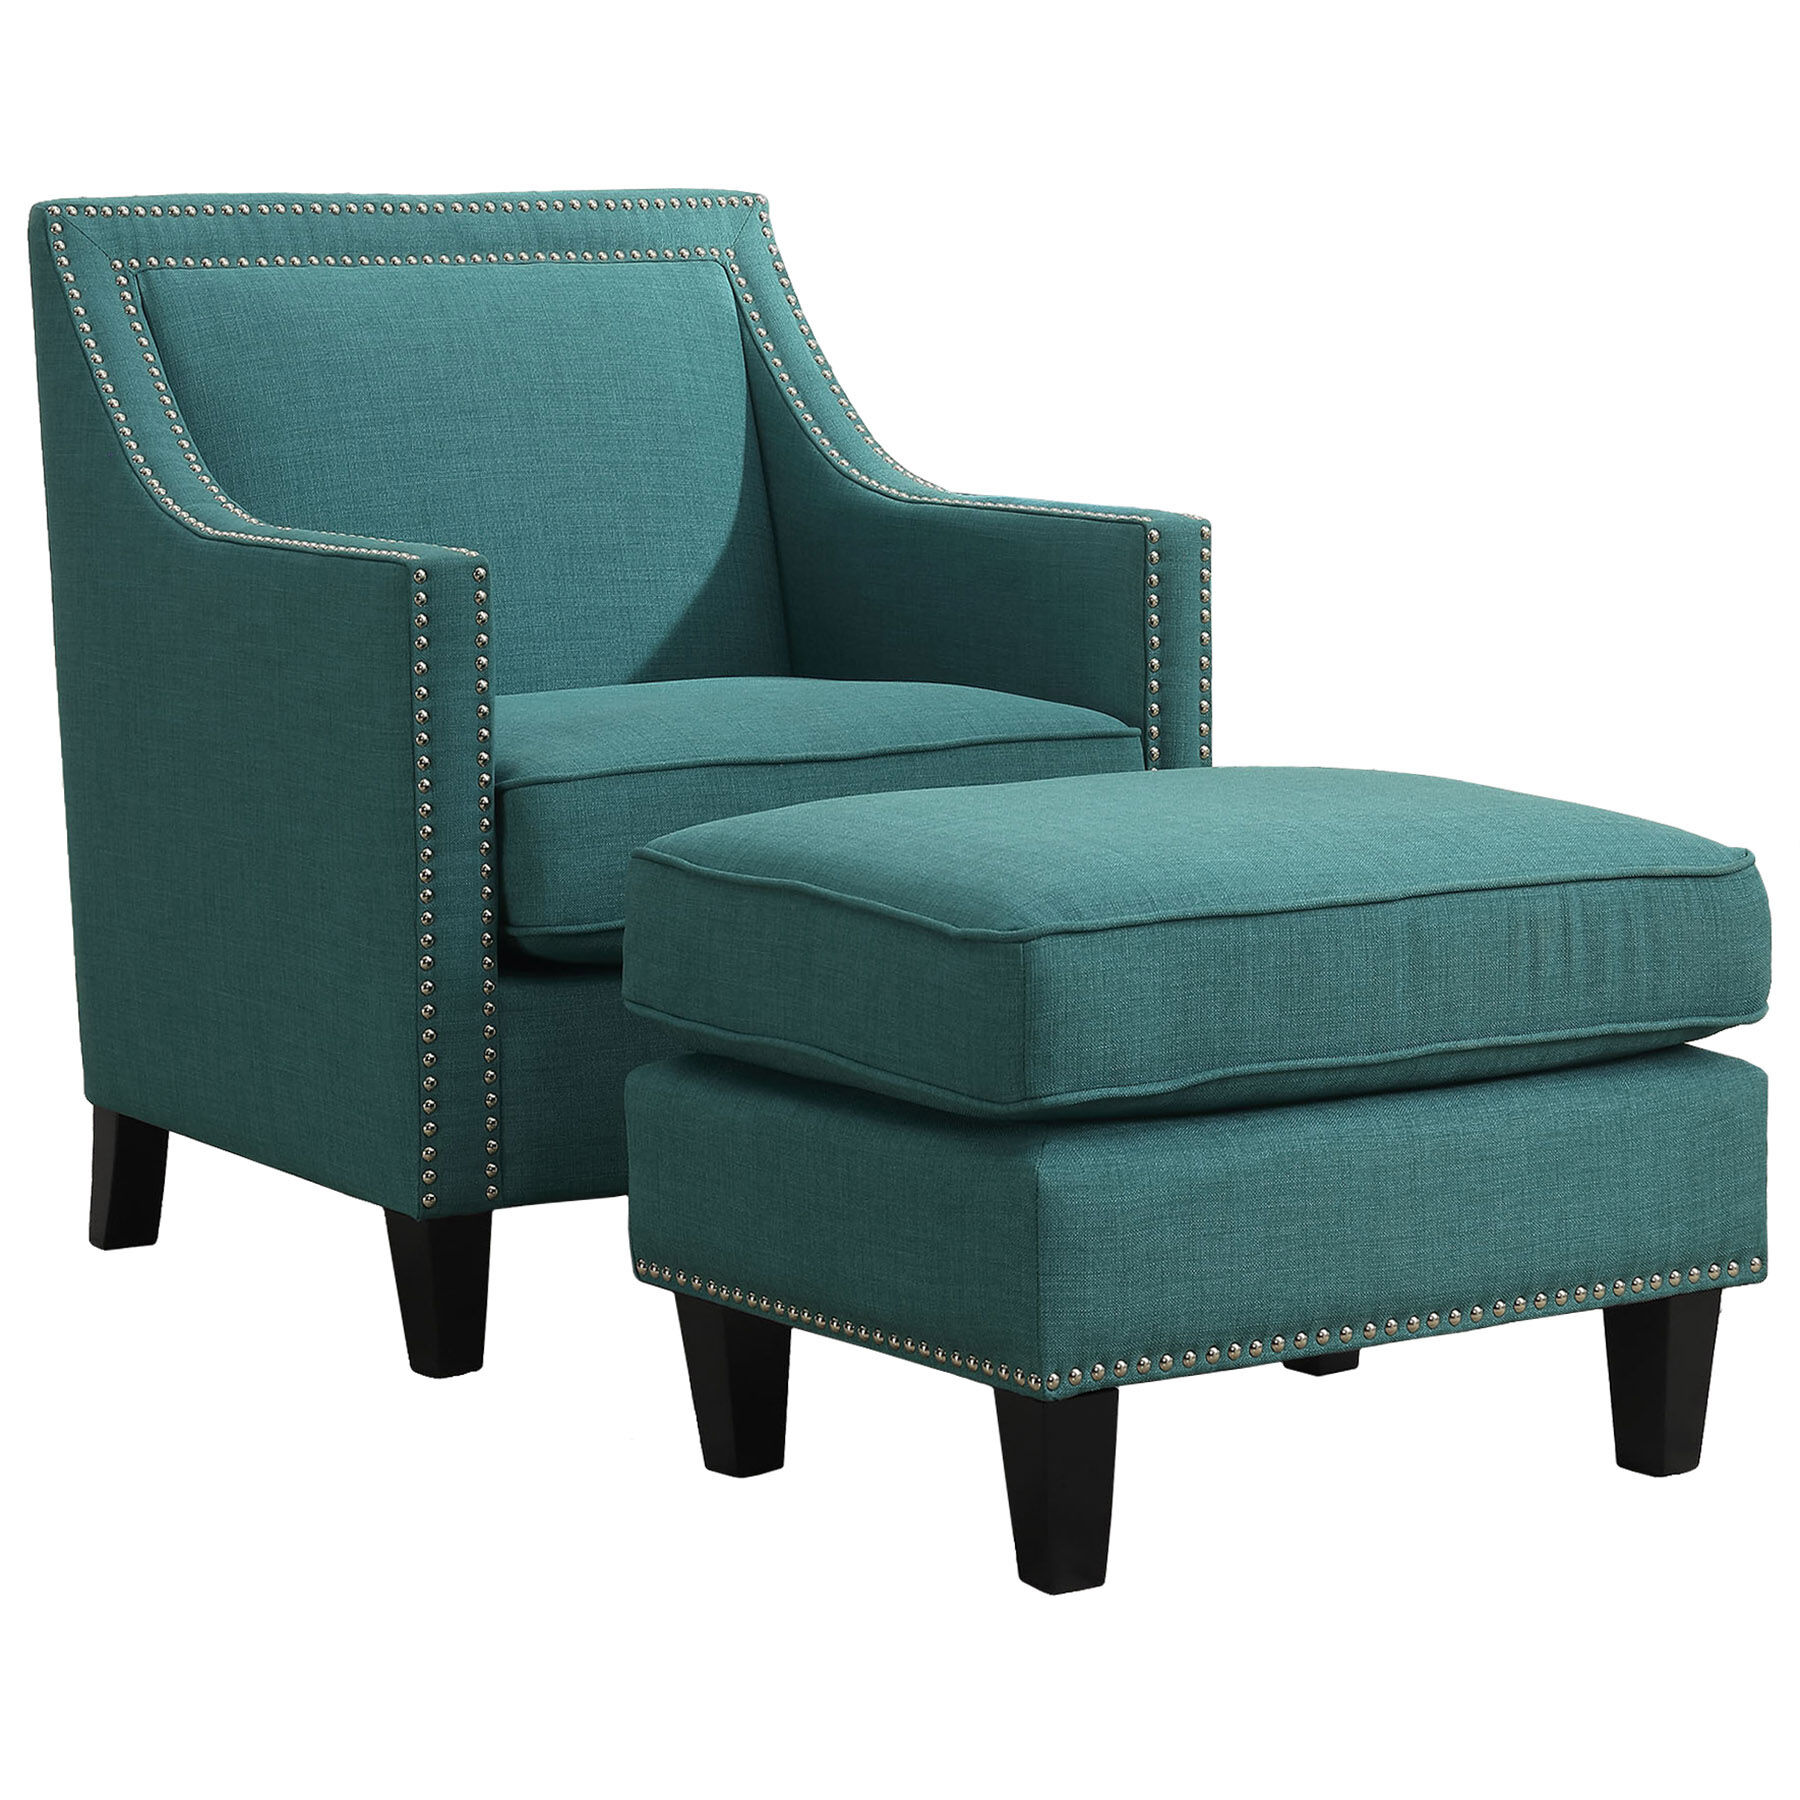 Erica Chair Teal At Home